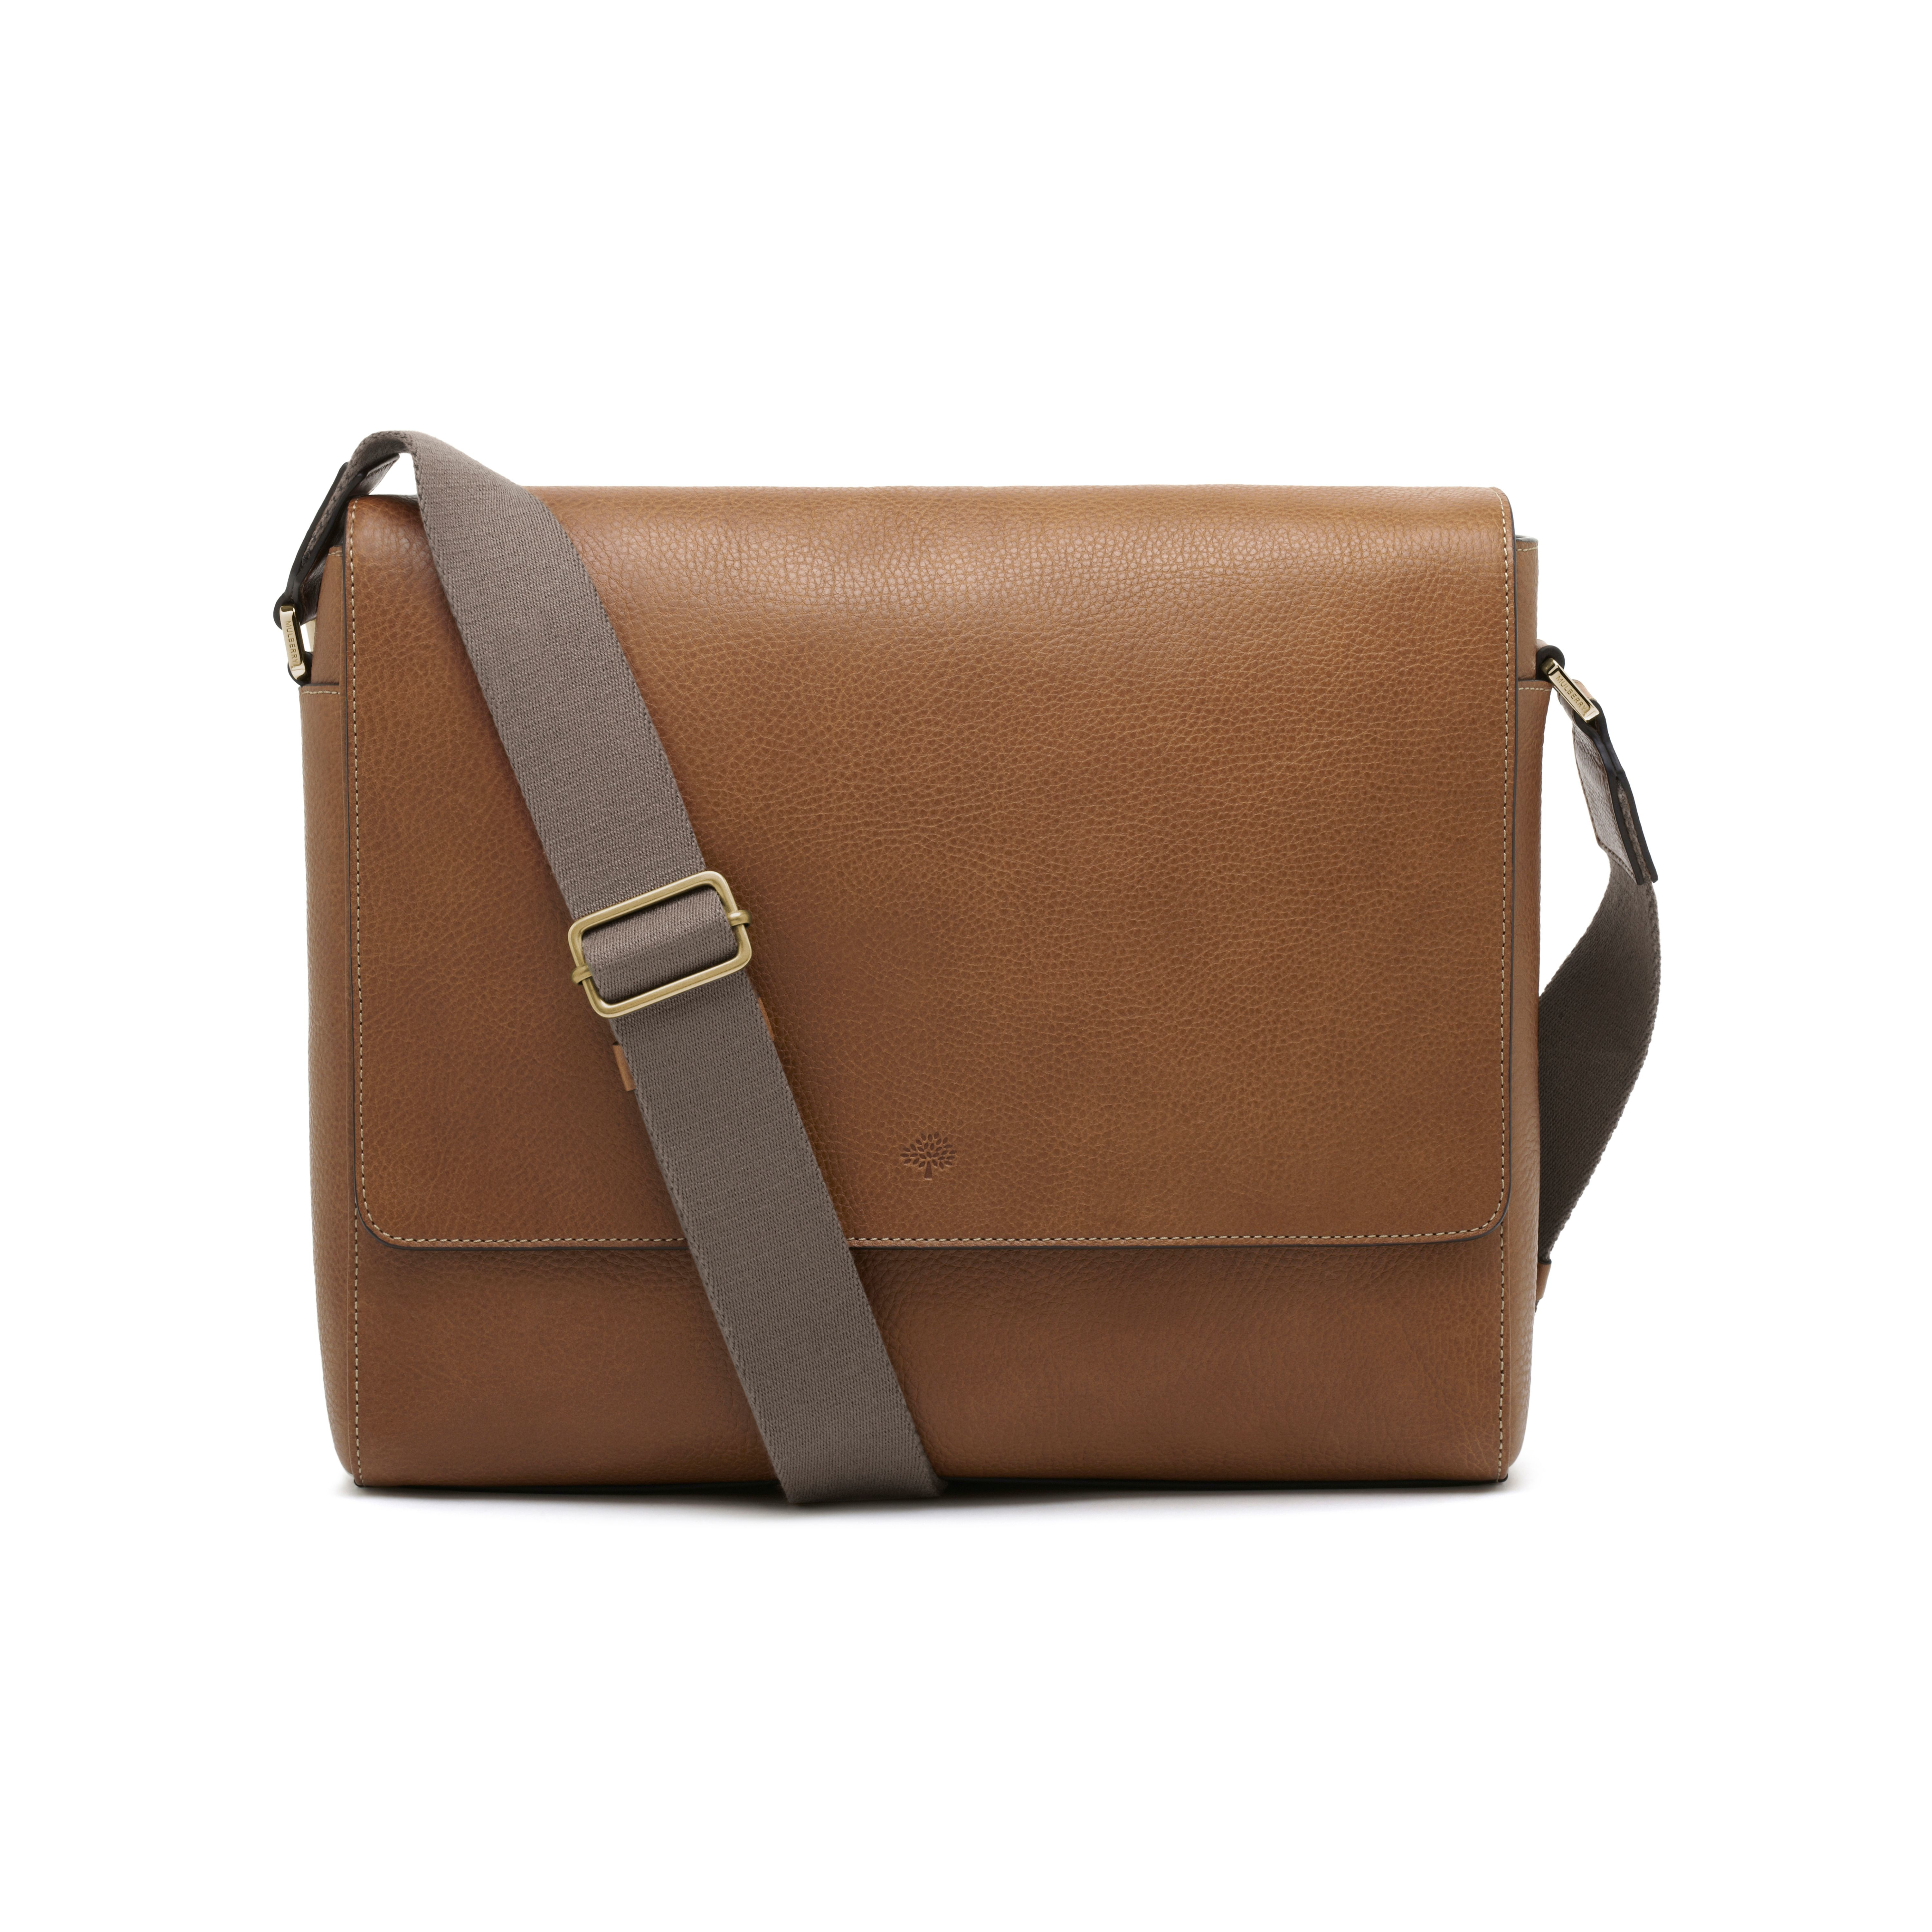 ... greece lyst mulberry maxwell messenger in brown for men c0e07 43d5e 4622c01e9a29f